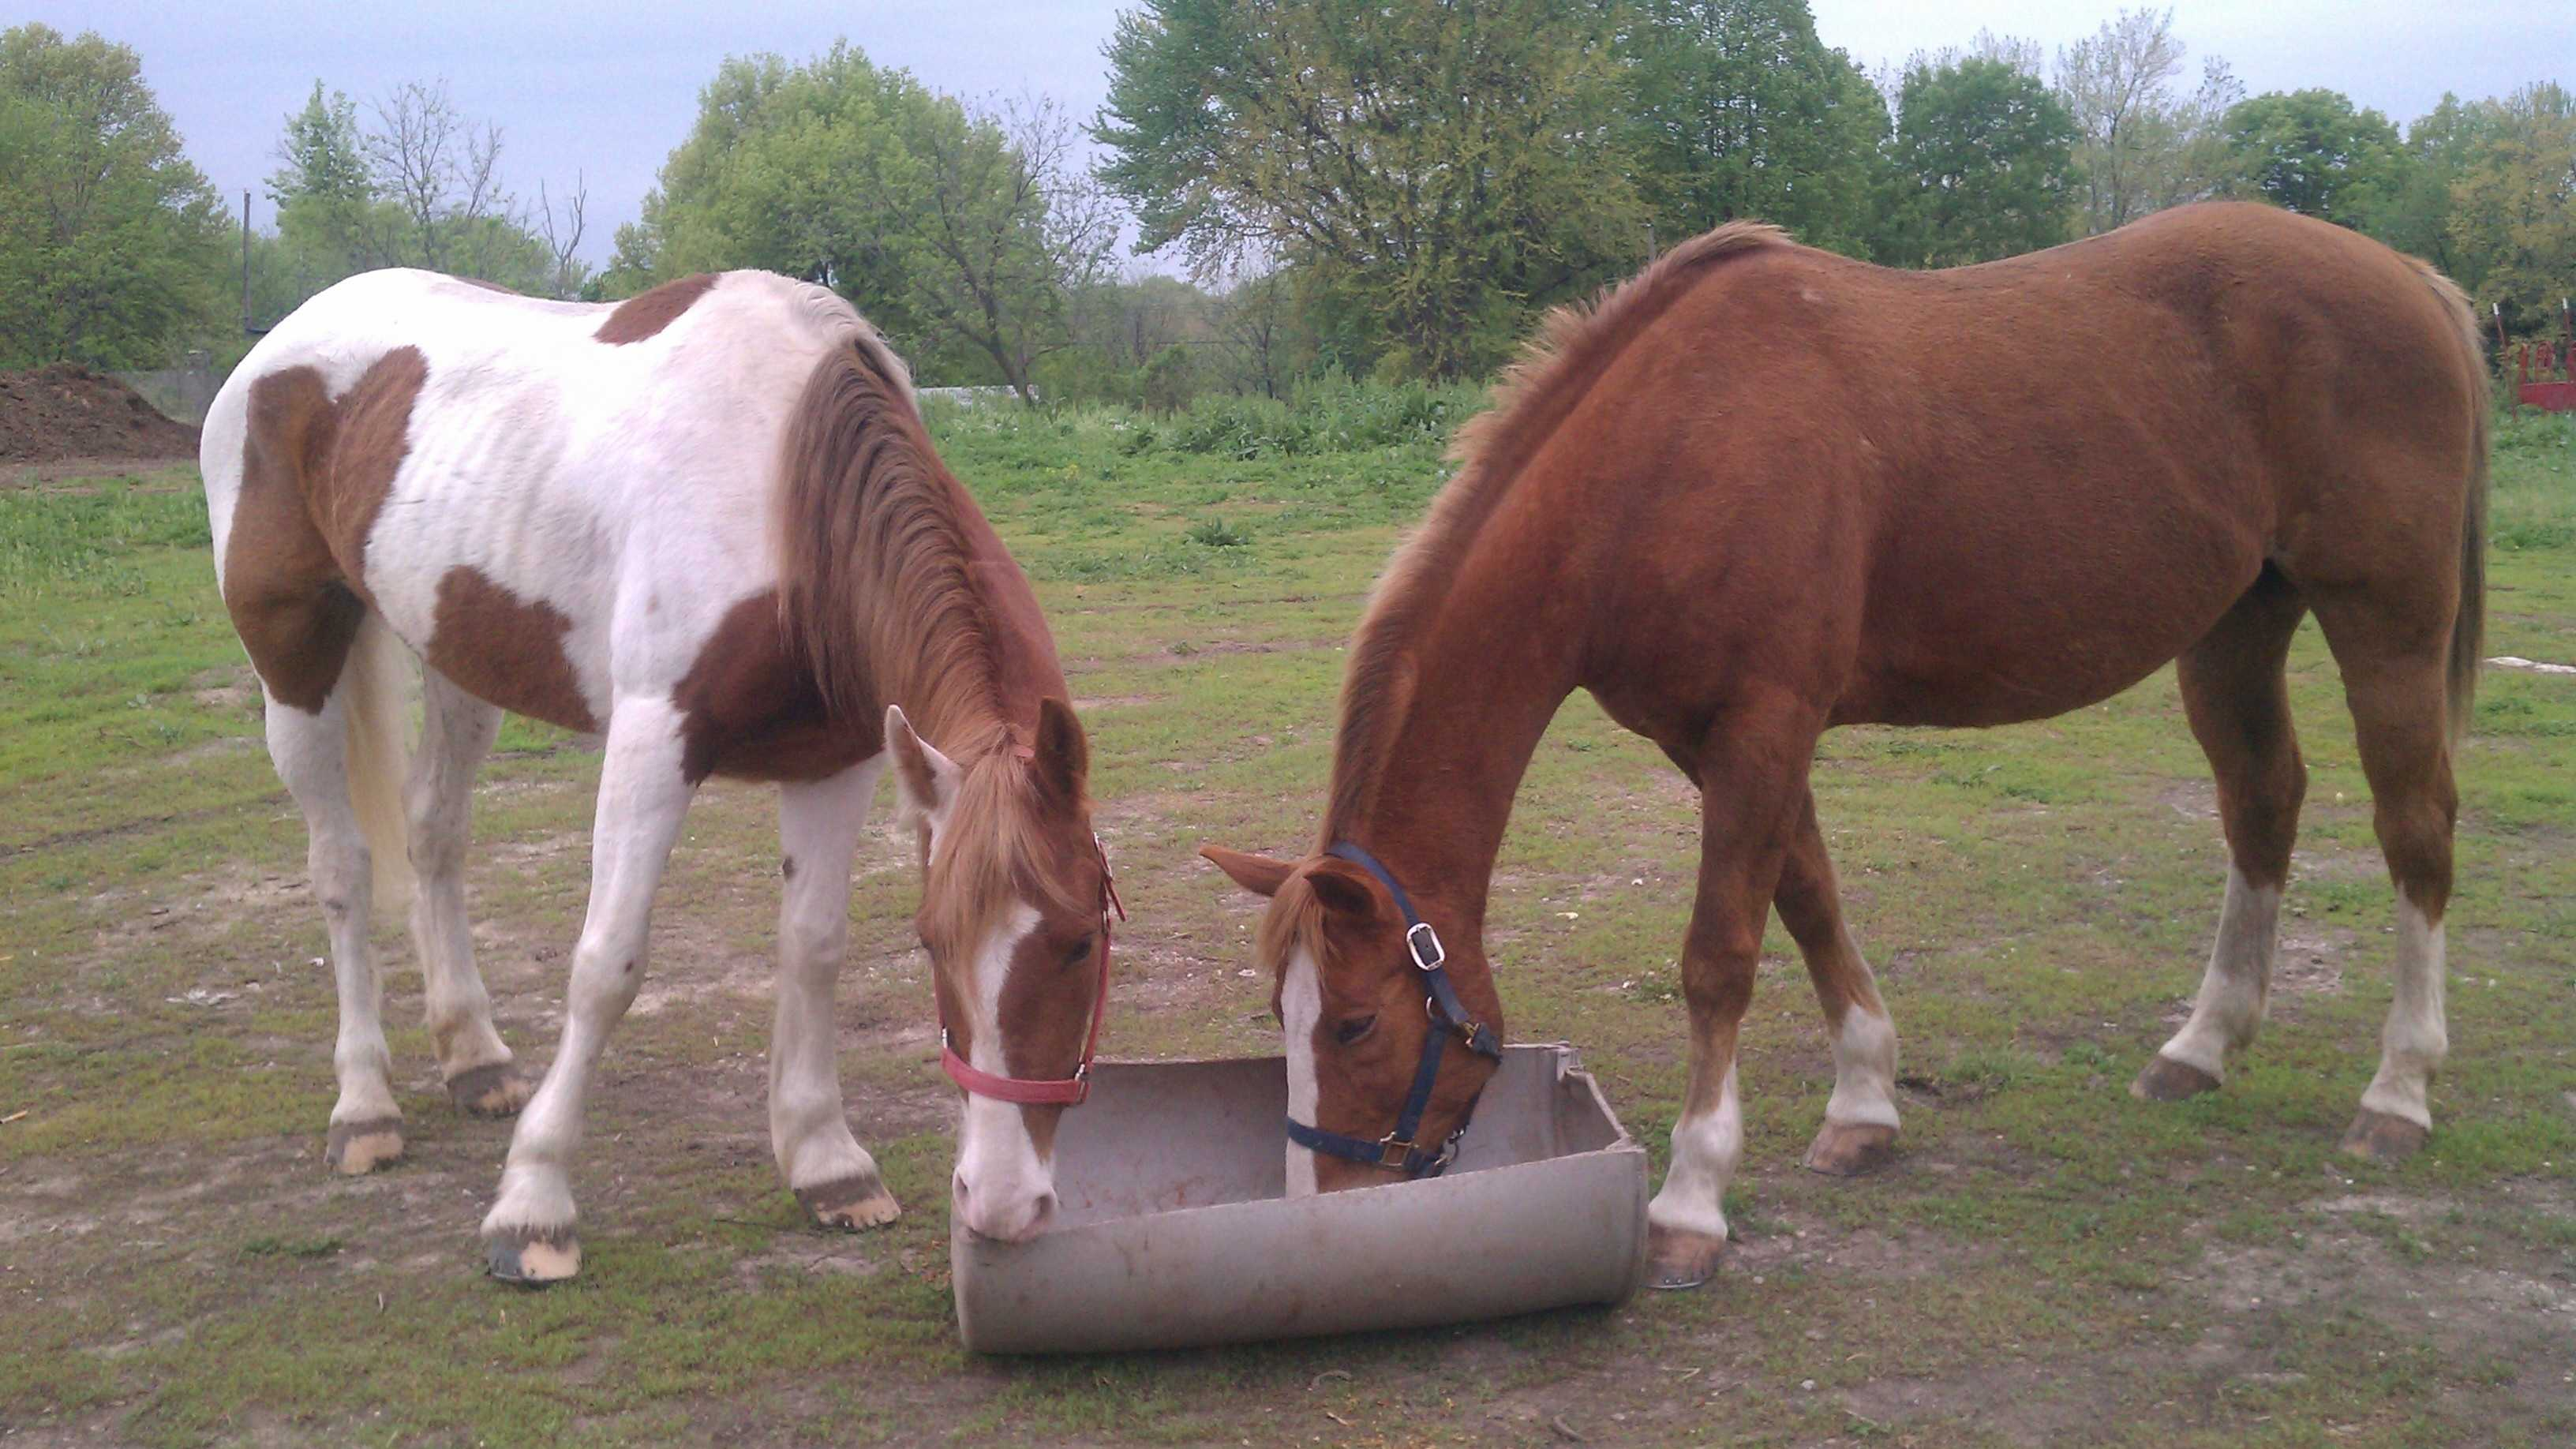 Kizzy (left), the horse that visited a Waldo neighborhood after escaping a birthday party, is back with Kokomo.